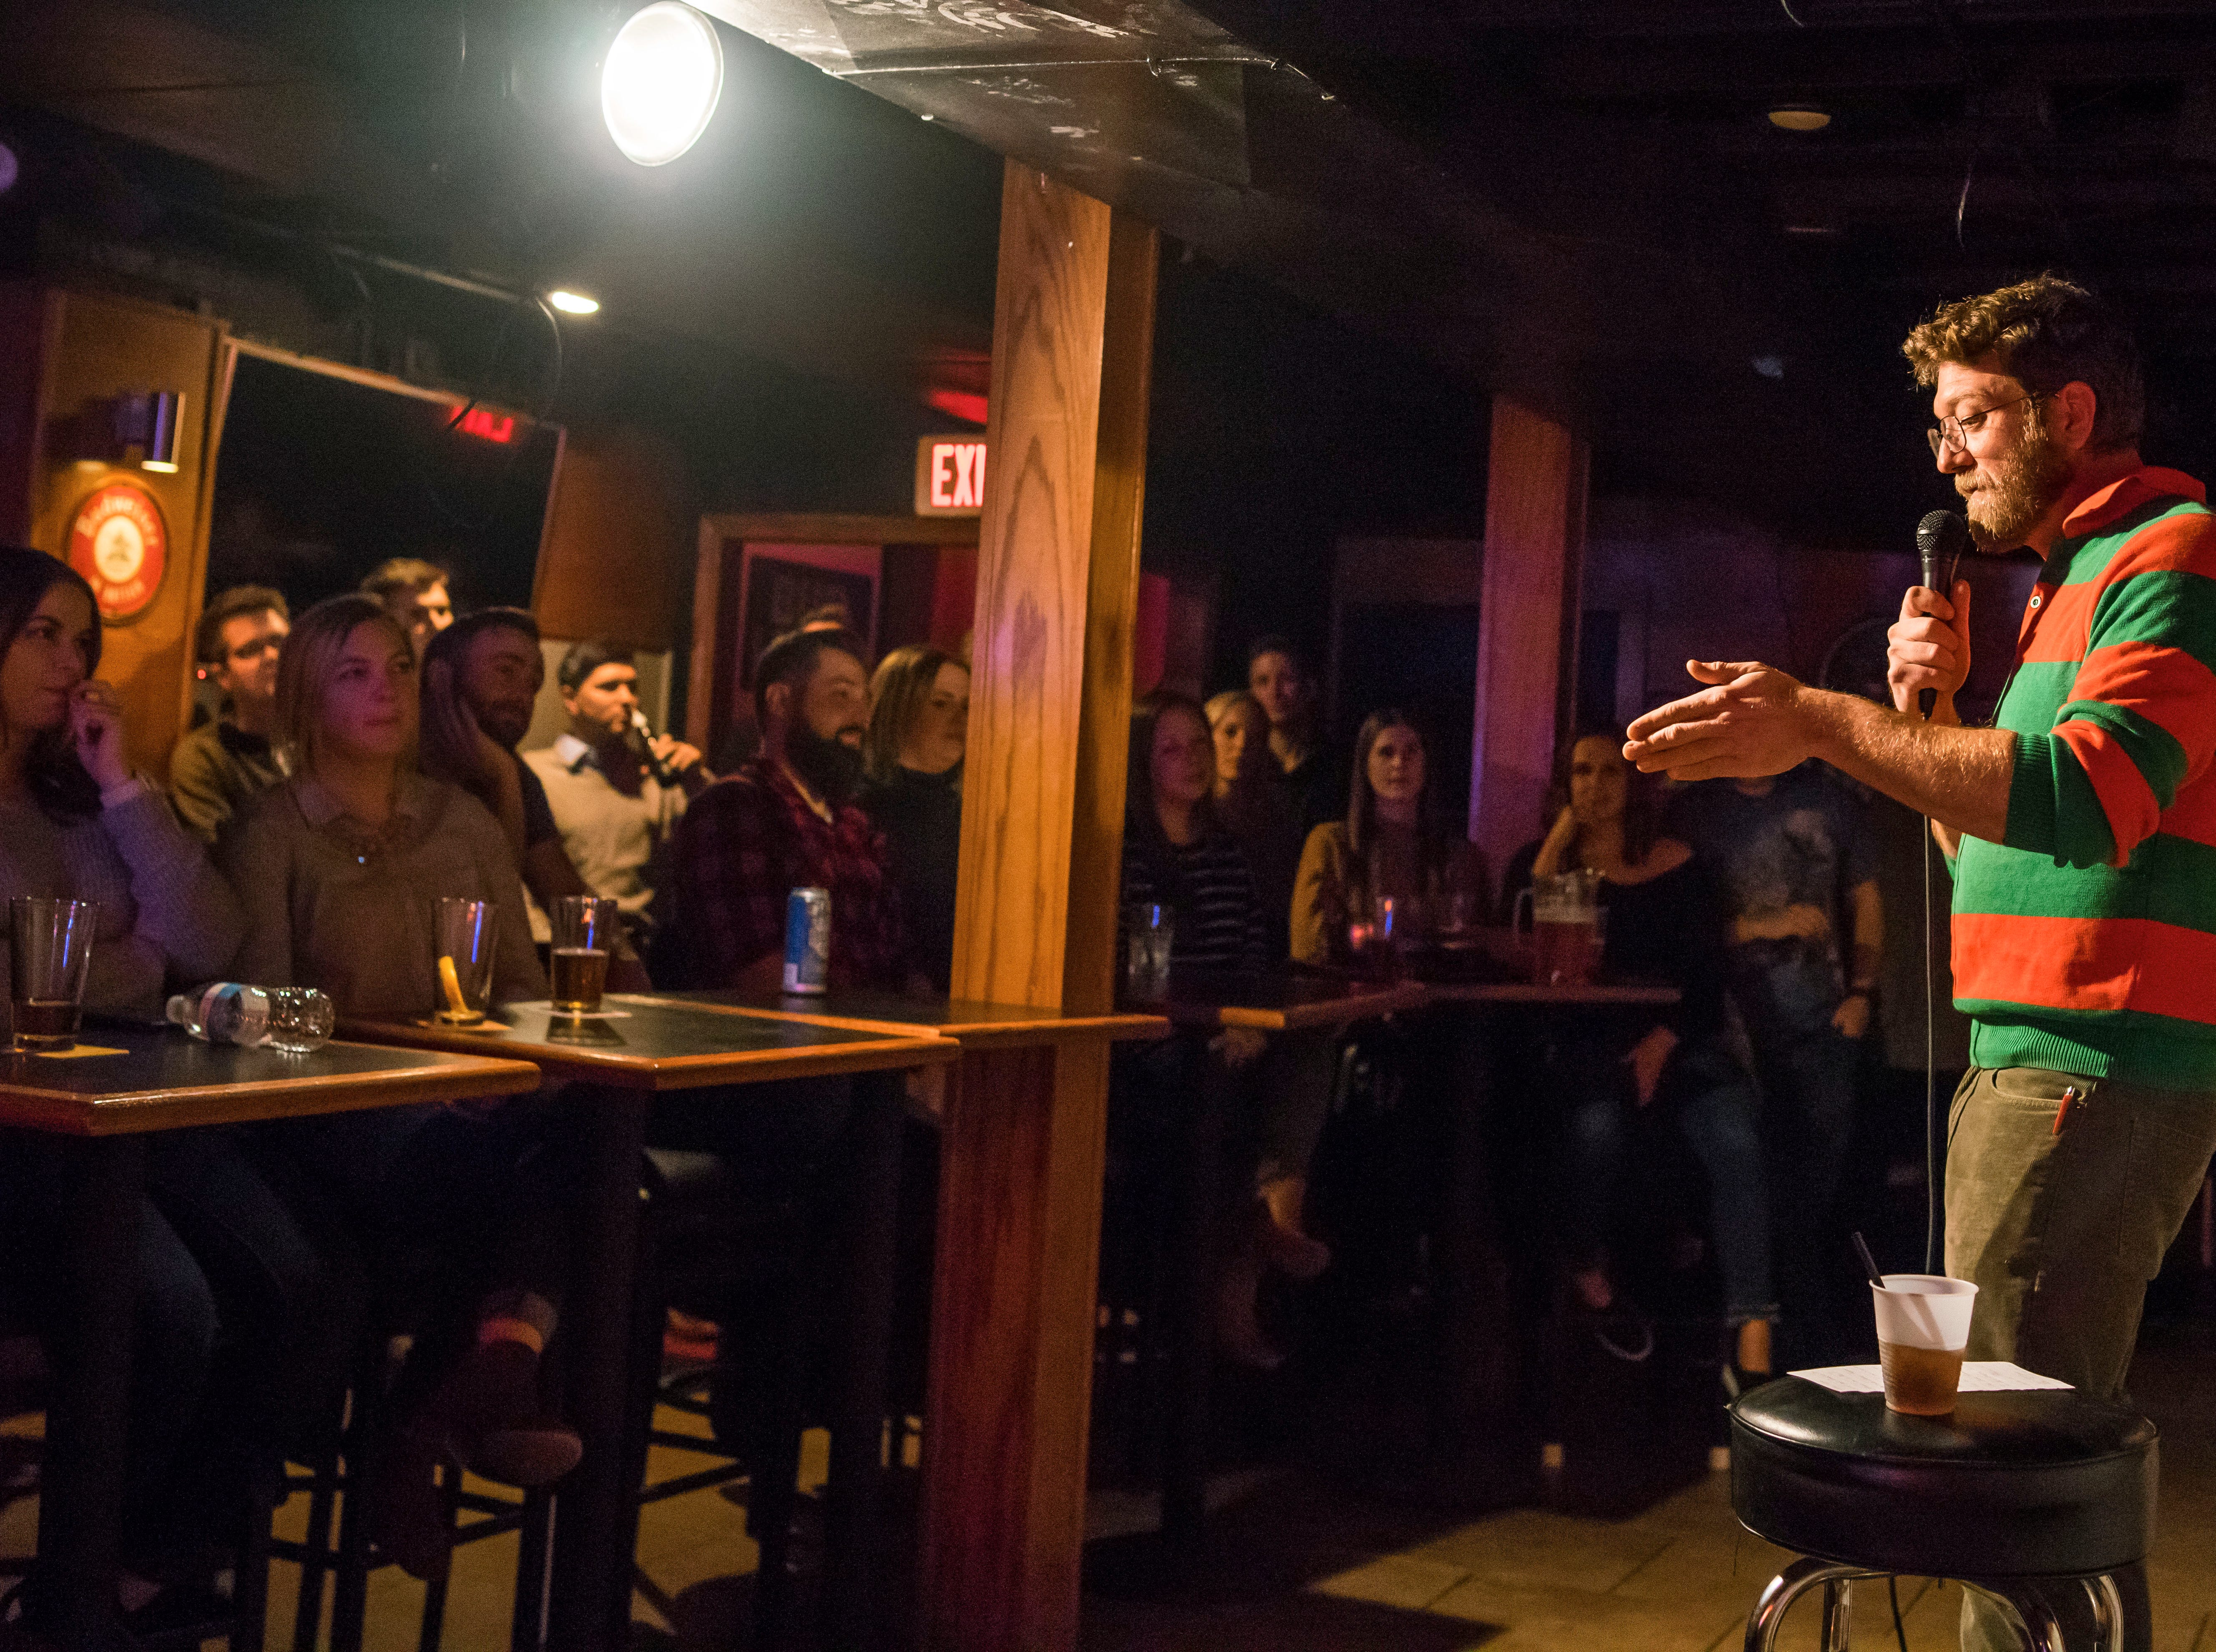 Toll McGrane, 37, of Des Moines, performing stand up comedy, Friday, Dec. 21, at the Bomb Shelter Comedy Showcase, hosted by the Beechwood.